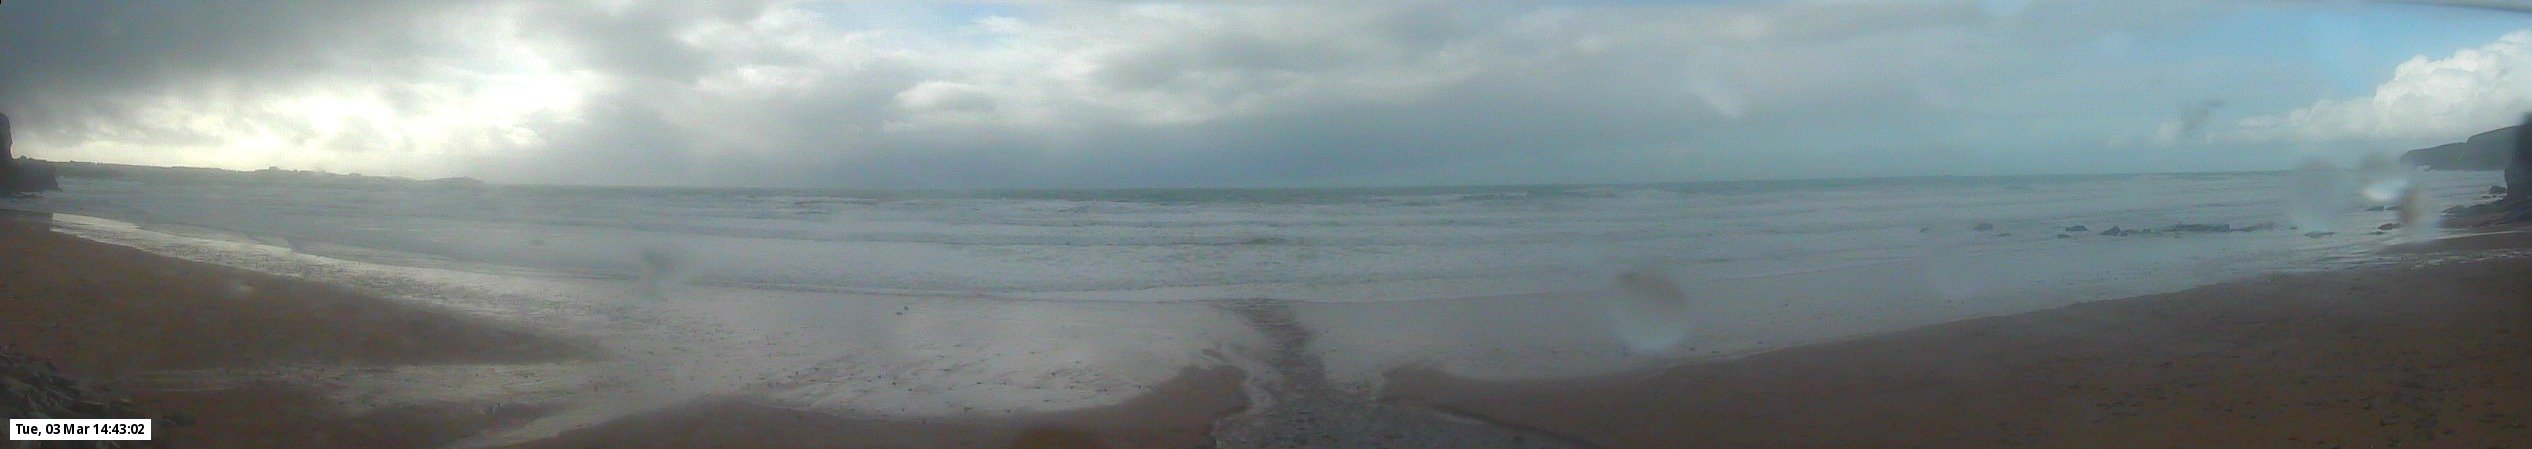 Webcam mais recente para Watergate Bay